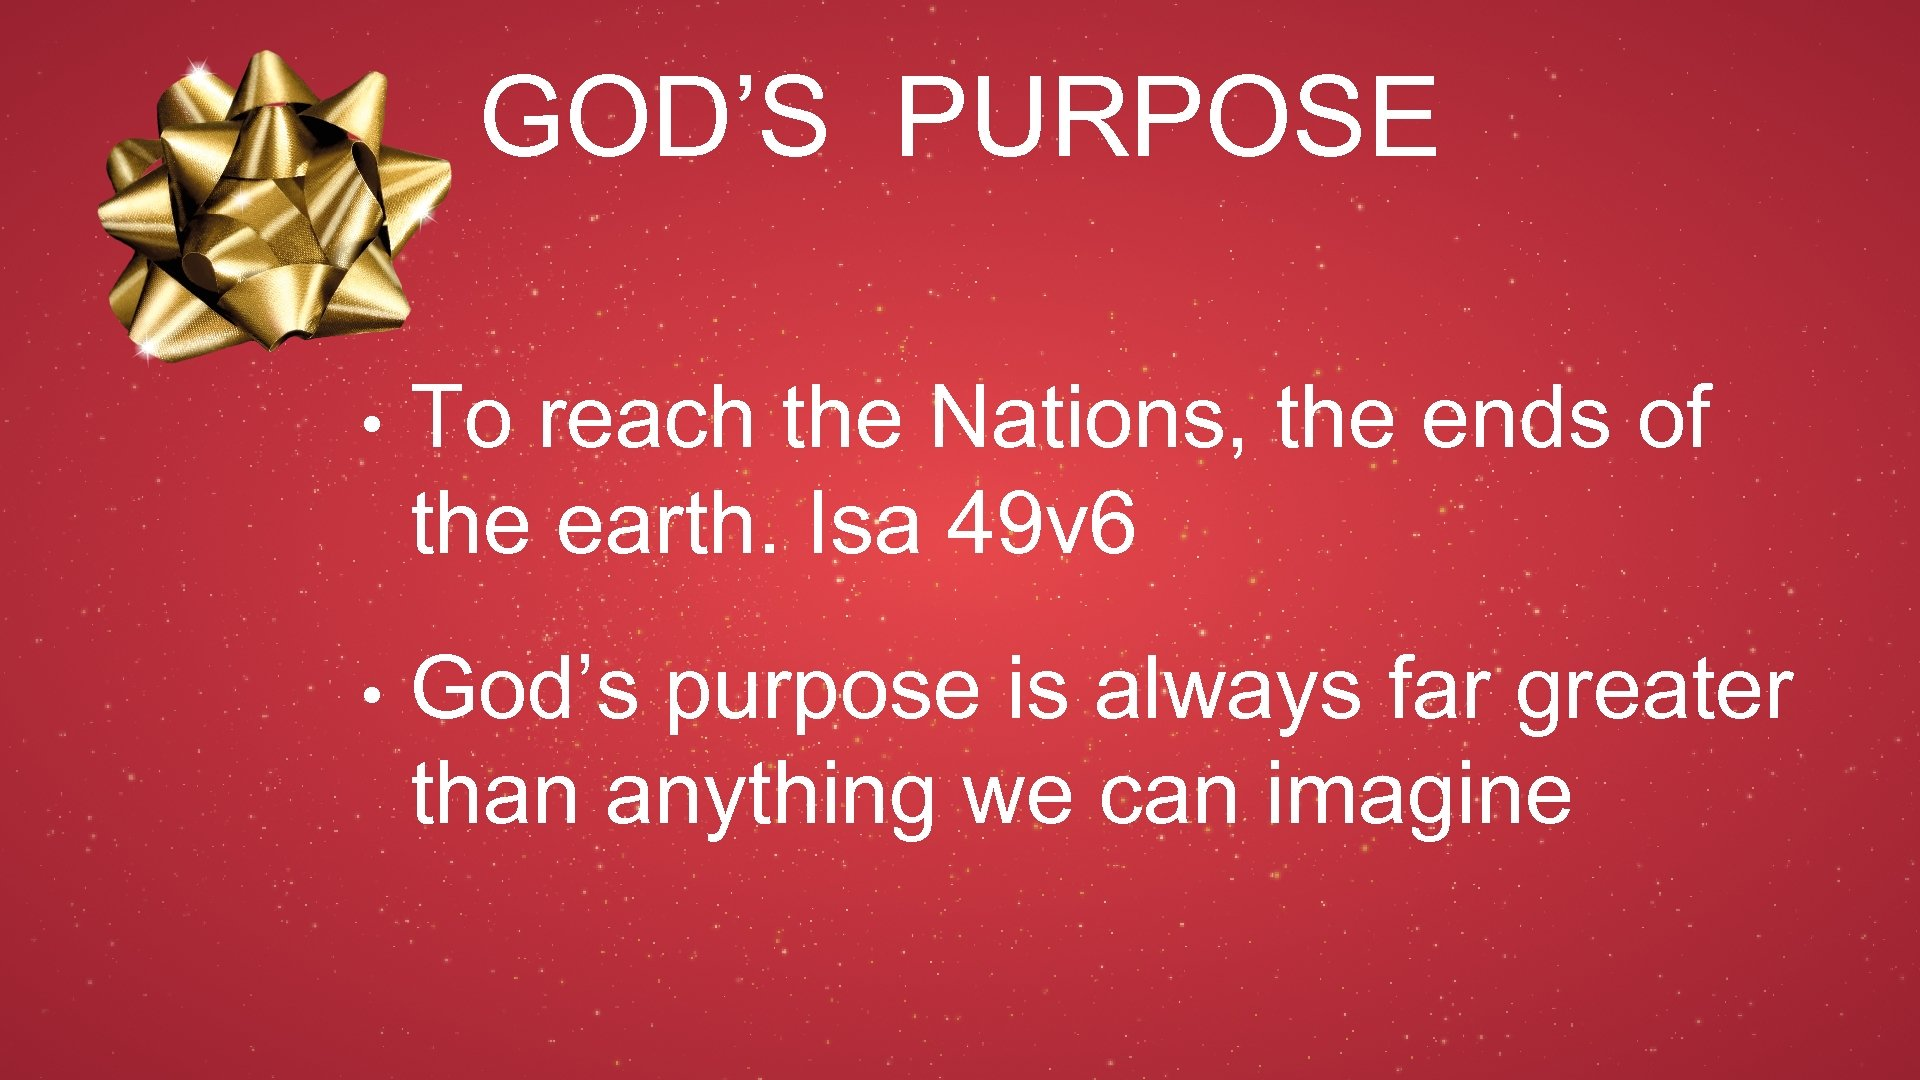 GOD'S PURPOSE • To reach the Nations, the ends of the earth. Isa 49